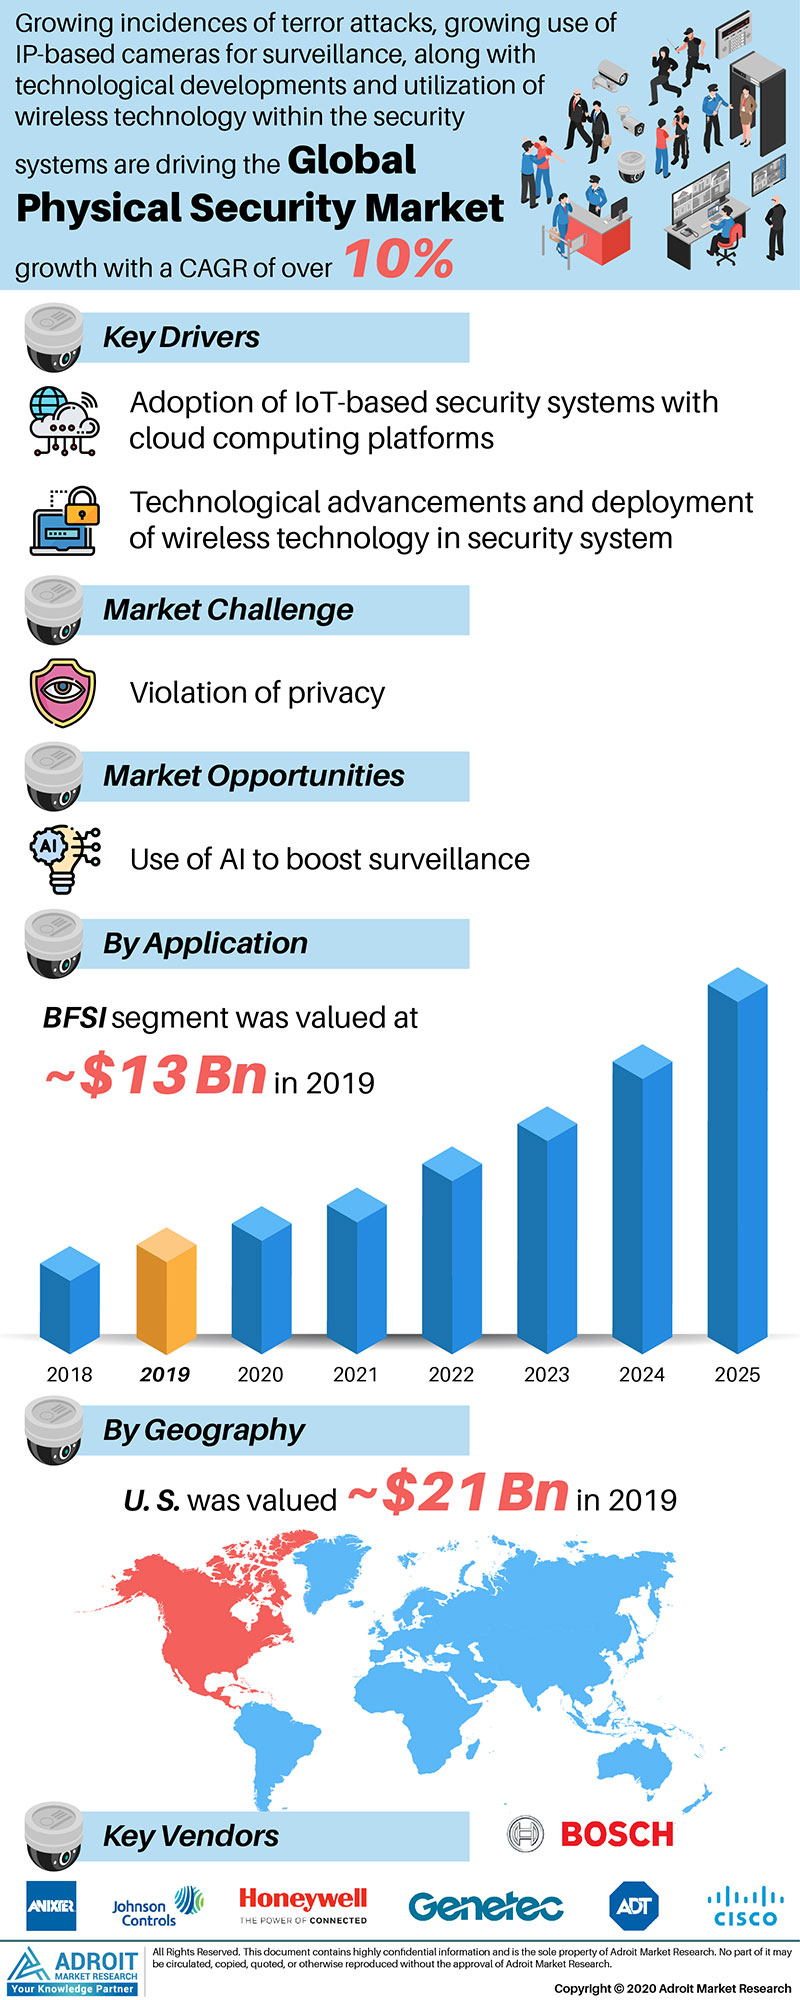 Physical Security Market Size 2017 By Application, Product, Region and Forecast 2019 to 2025